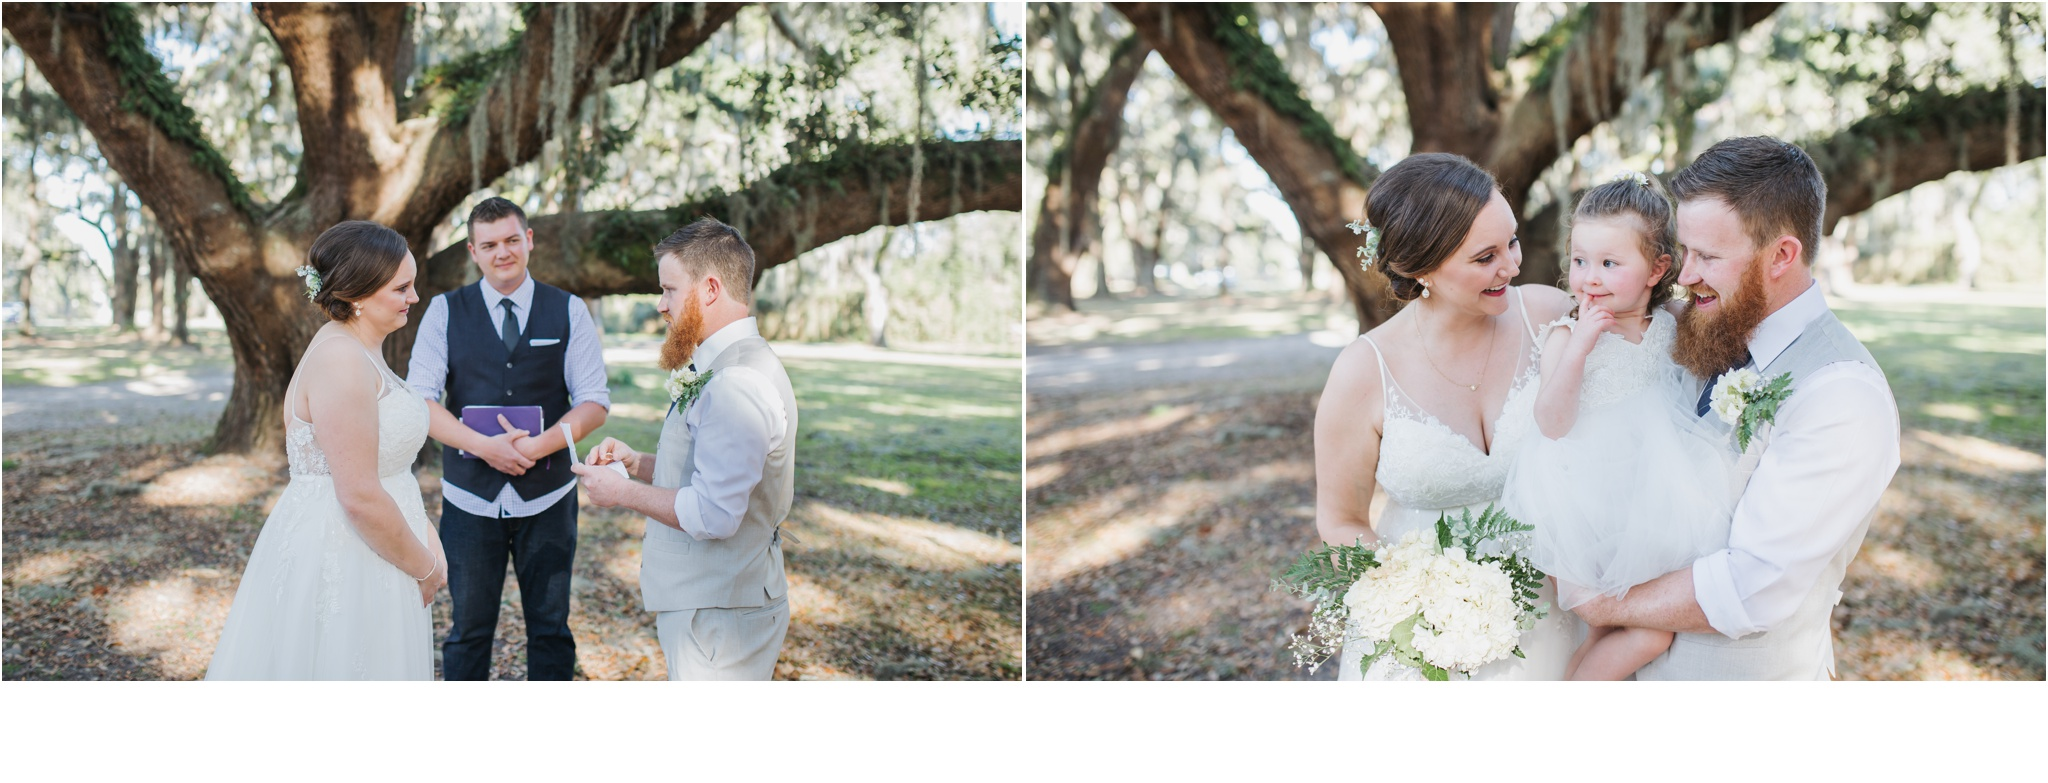 Rainey_Gregg_Photography_St._Simons_Island_Georgia_California_Wedding_Portrait_Photography_1728.jpg